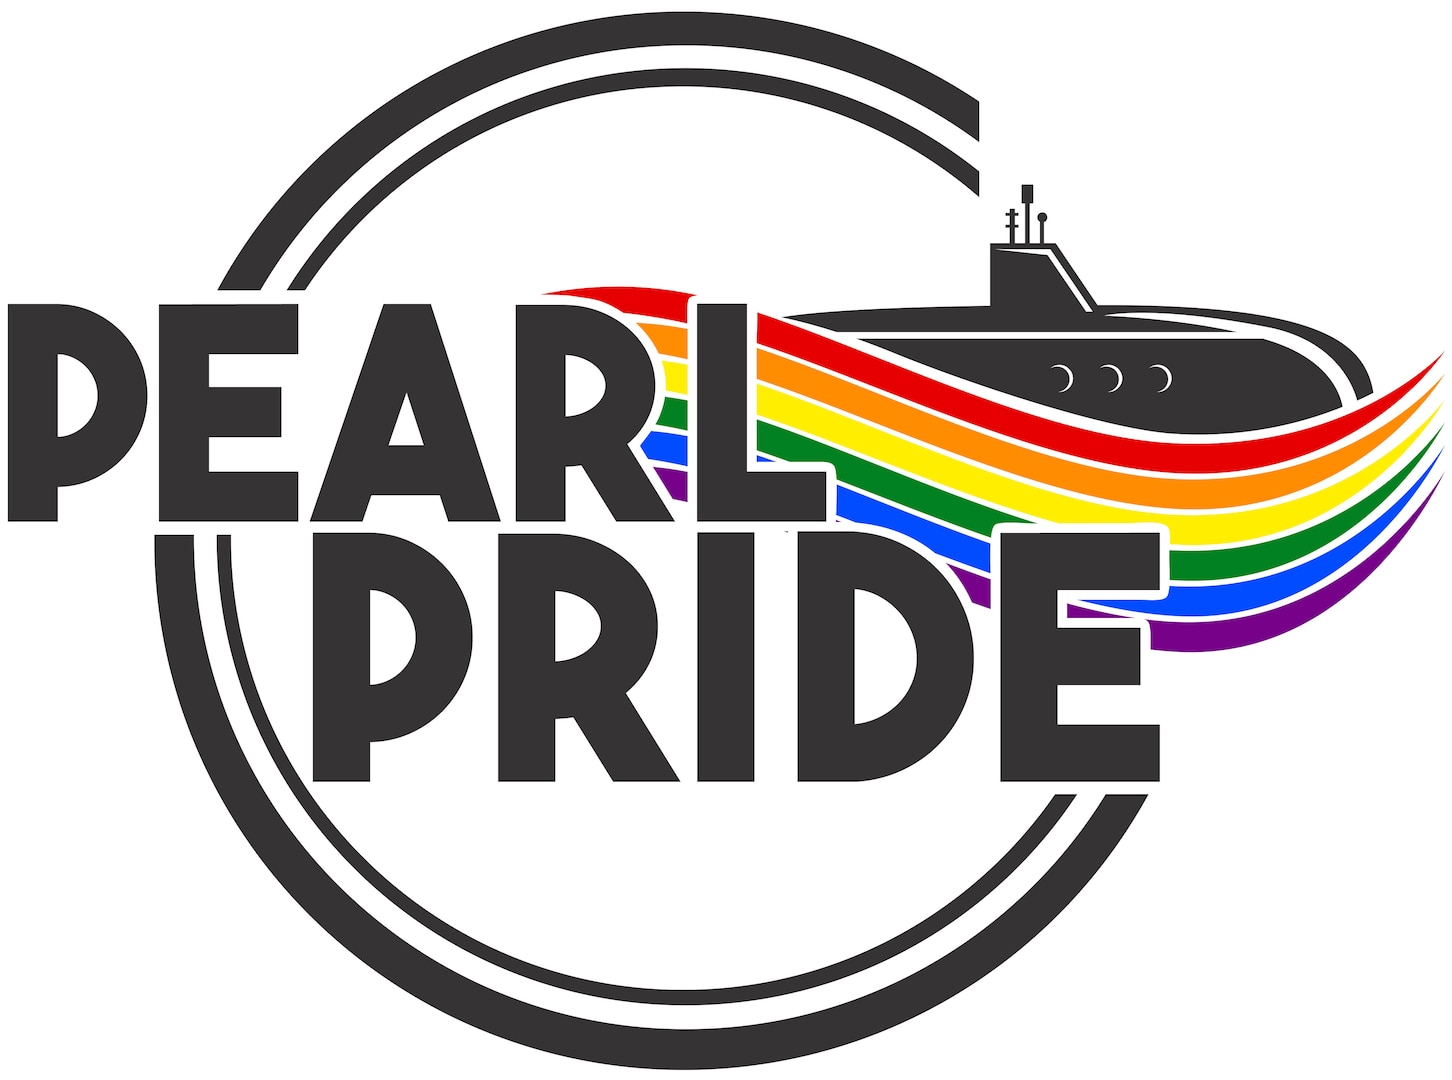 The official Pearl Pride logo.